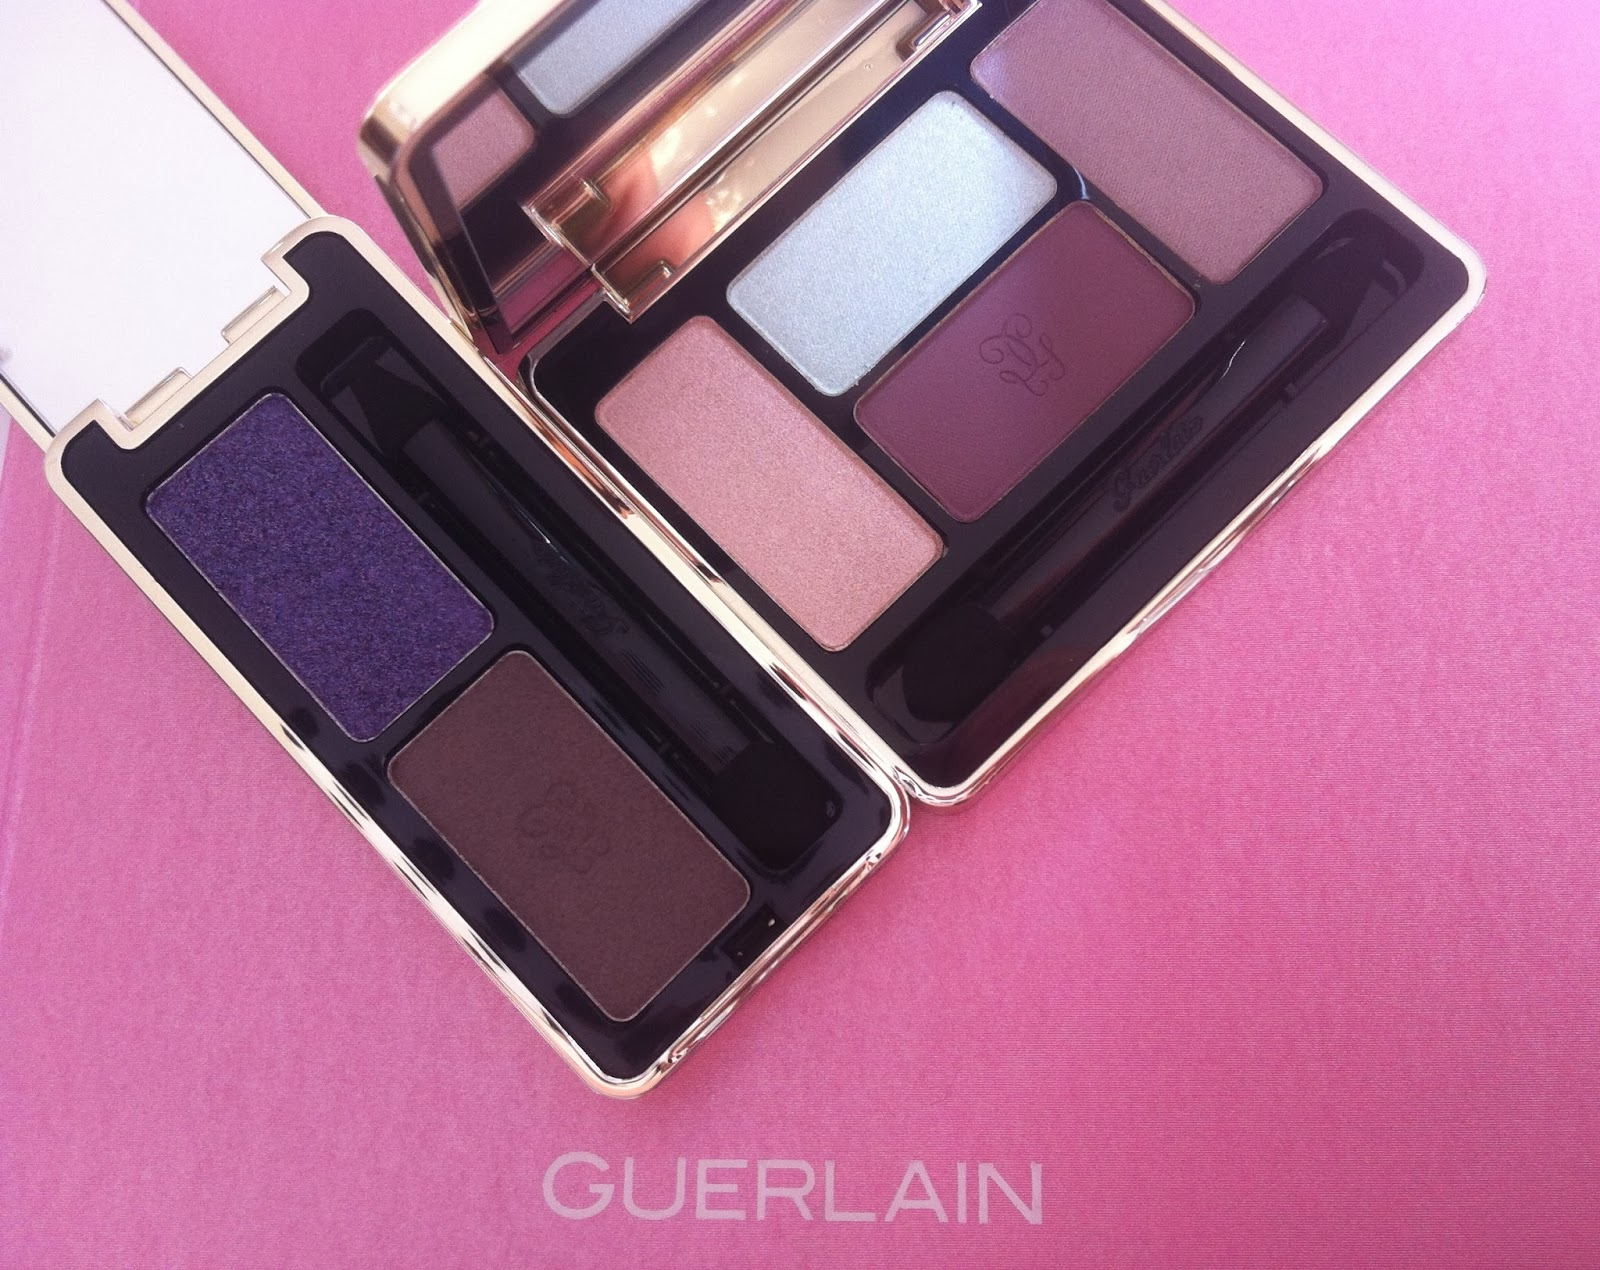 Guerlain make up spring 2014 Météorites Blossom Collection, Ecrin 4 couleurs les tendres, Ecrin 2 couleurs two vip